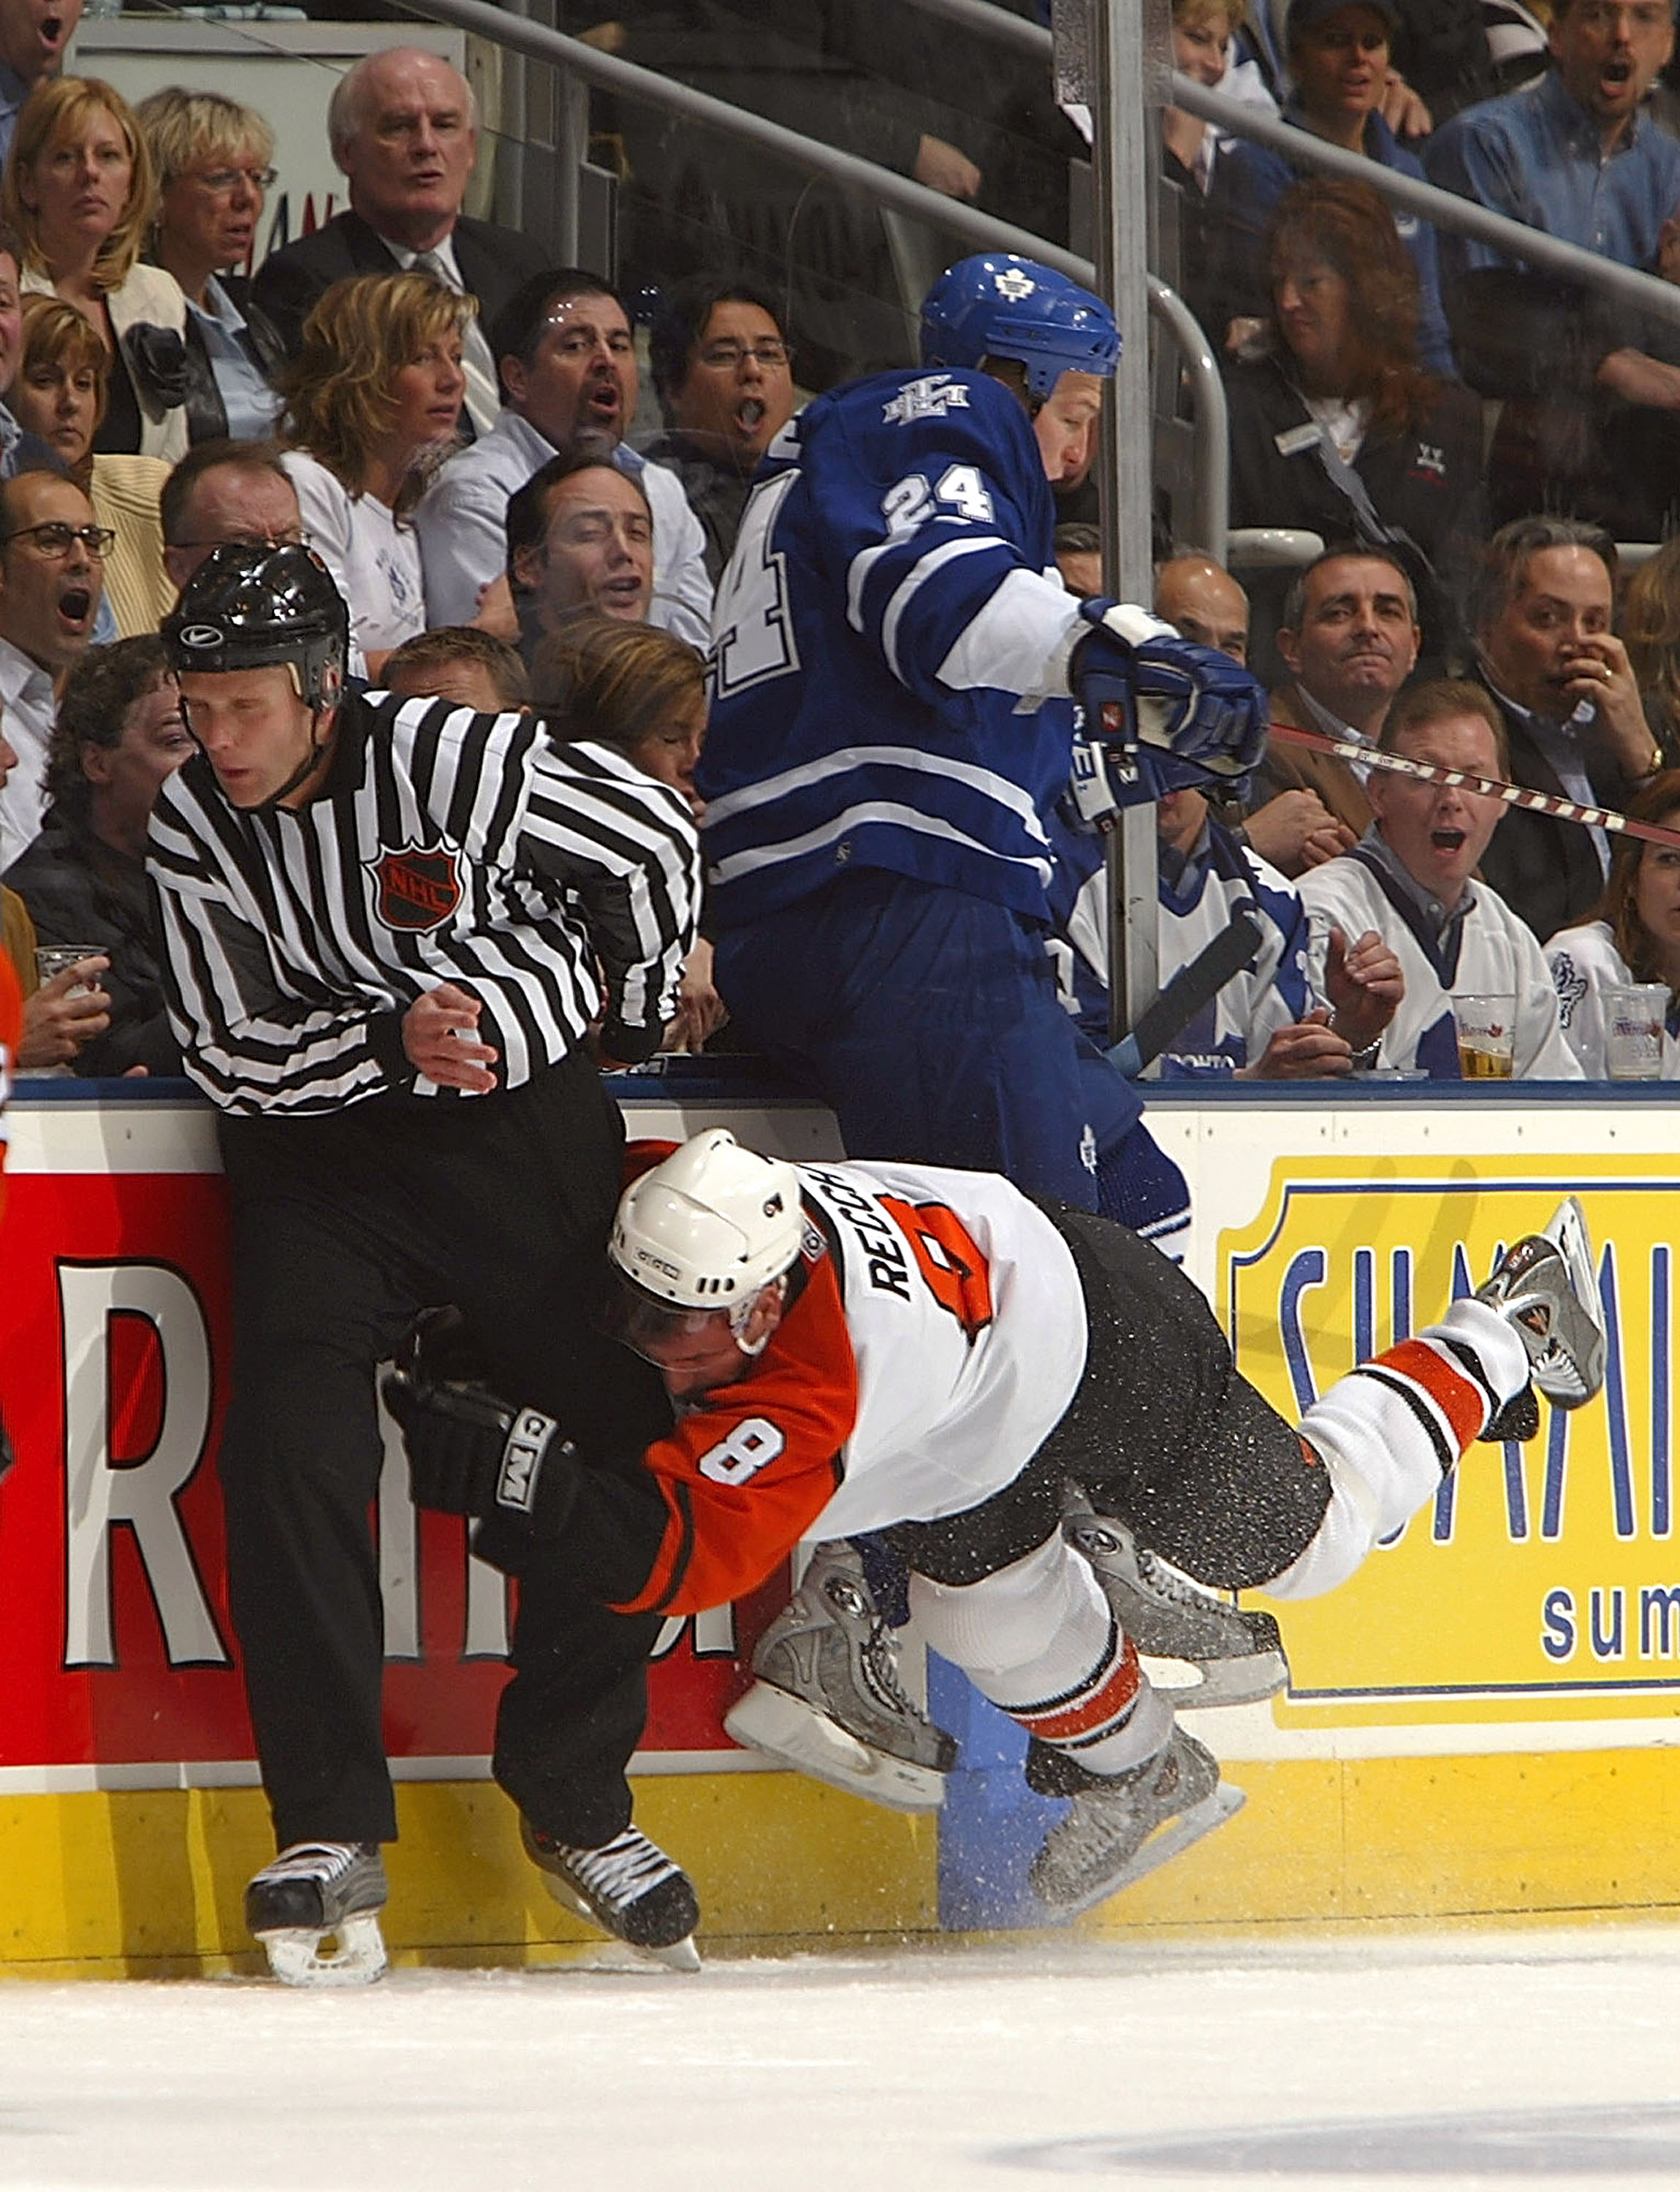 TORONTO - APRIL 28: Mark Recchi #8 of the Philadelphia Flyers and linesman Tim Nowak are both taken out on a check from Bryan McCabe #24 of the Toronto Maple Leafs in Game three of the Eastern Conference Semifinals during the 2004 NHL Stanley Cup Playoffs April 28, 2004 at Air Canada Centre in Toronto, Ontario, Canada. (Photo by Dave Sandford/Getty Images)